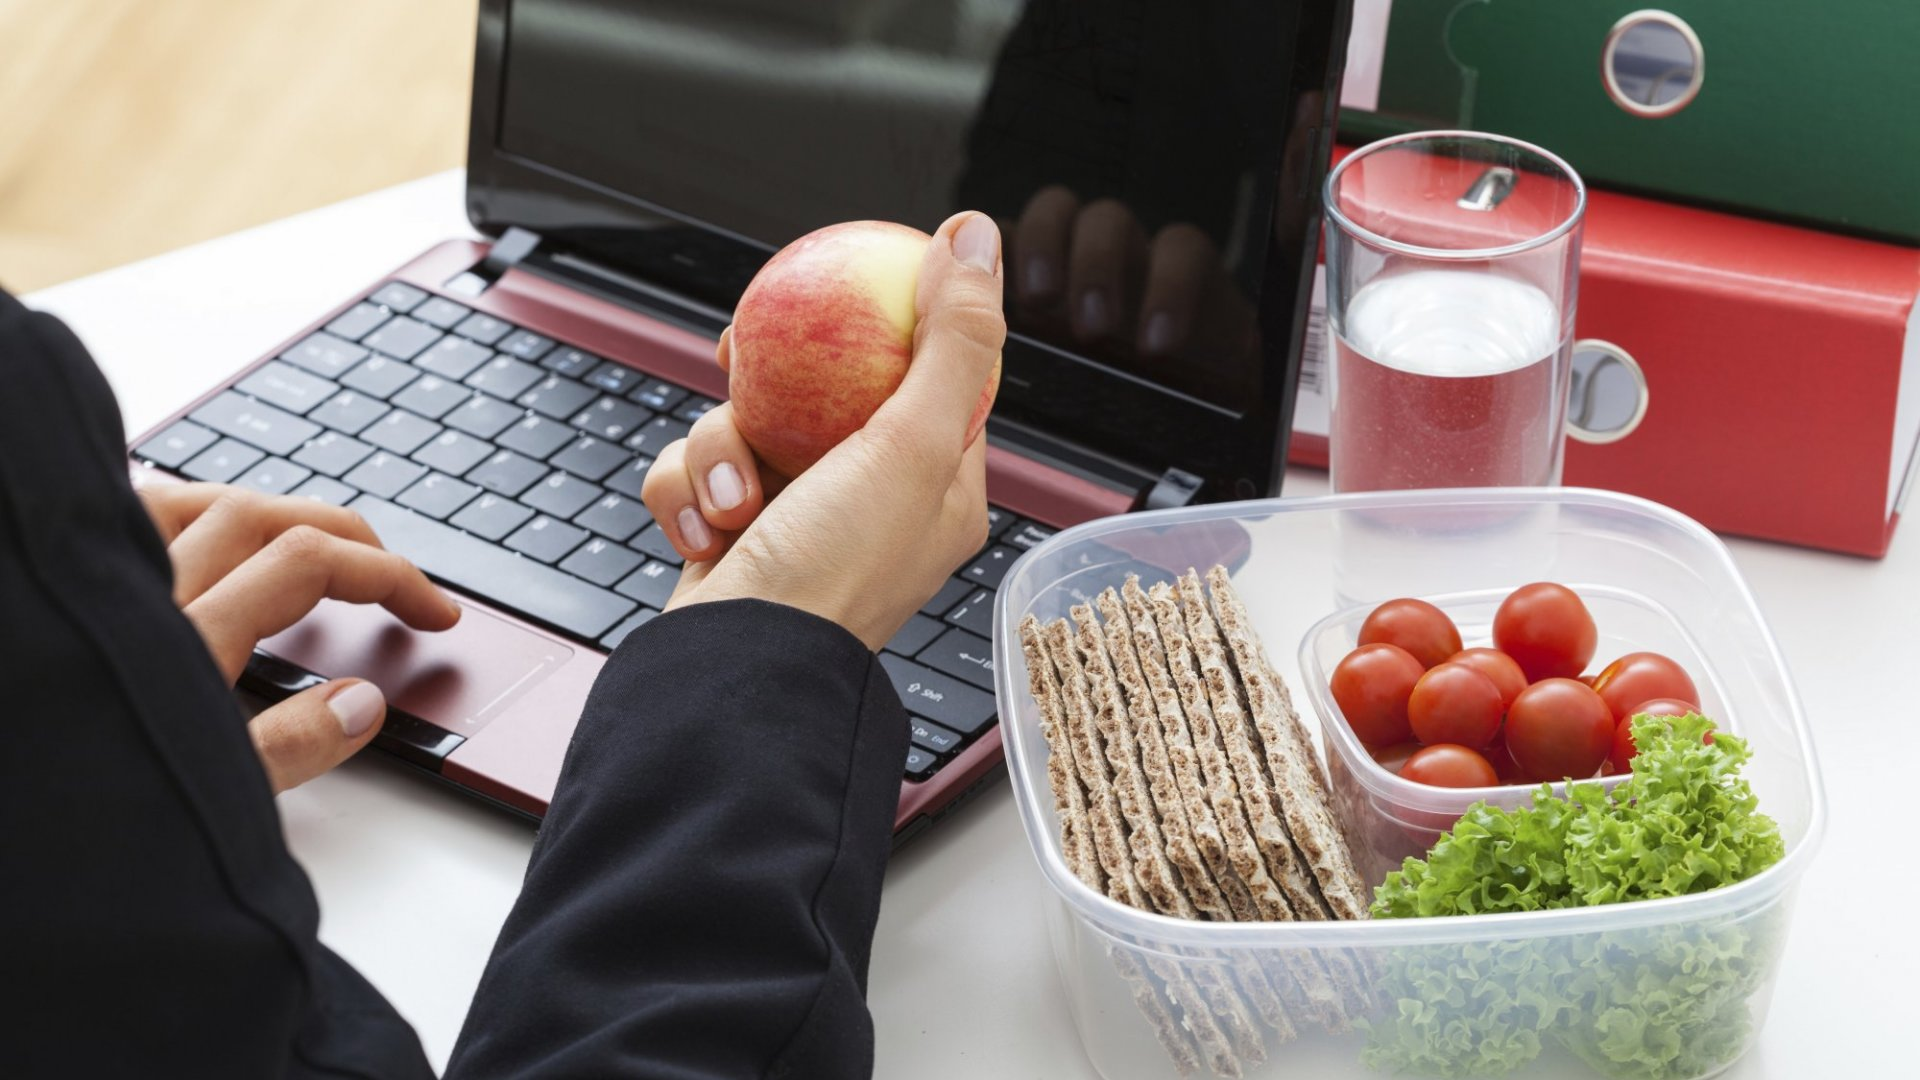 3 Healthy Eating Habits That Will Also Make You Super Productive at Work